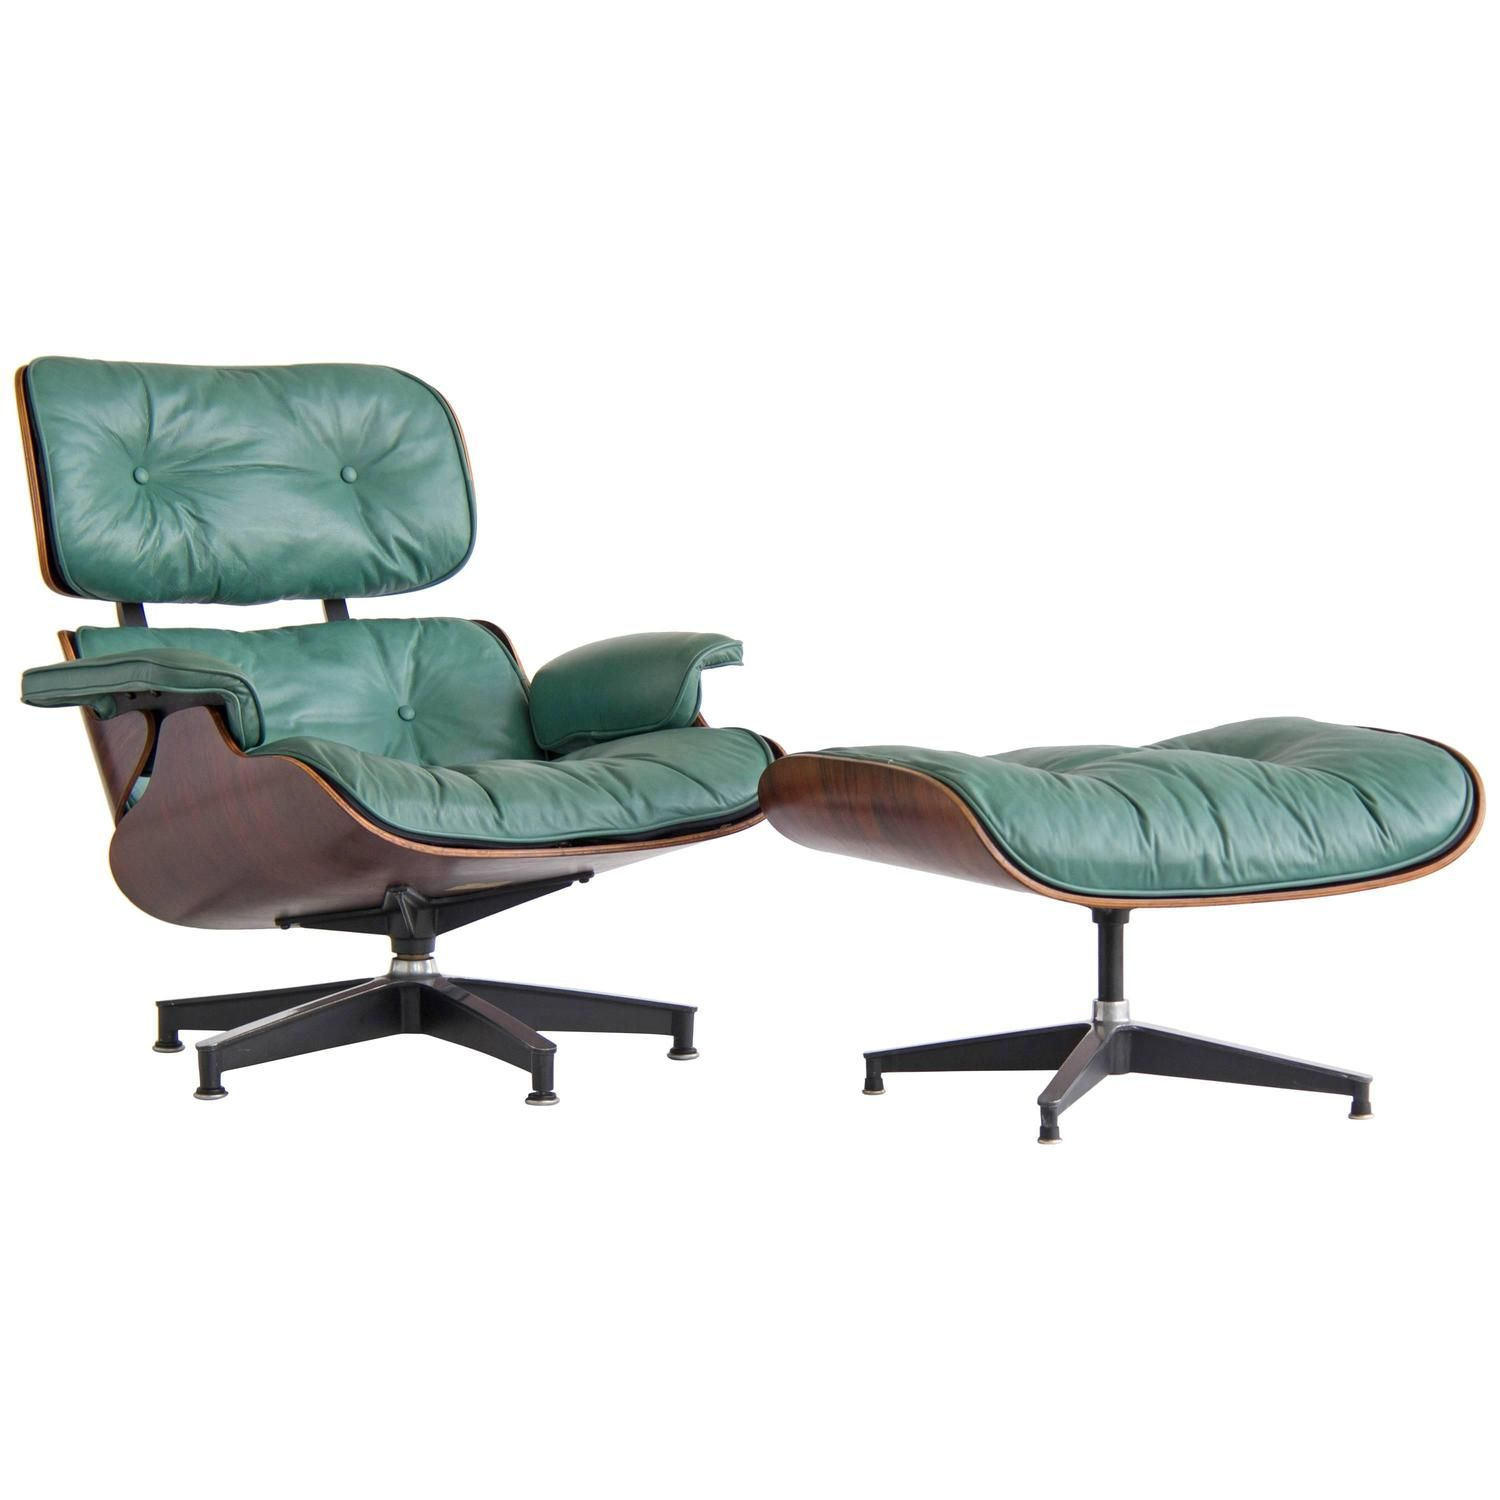 Eames lounge chair and ottoman in chocolate brown and rosewood